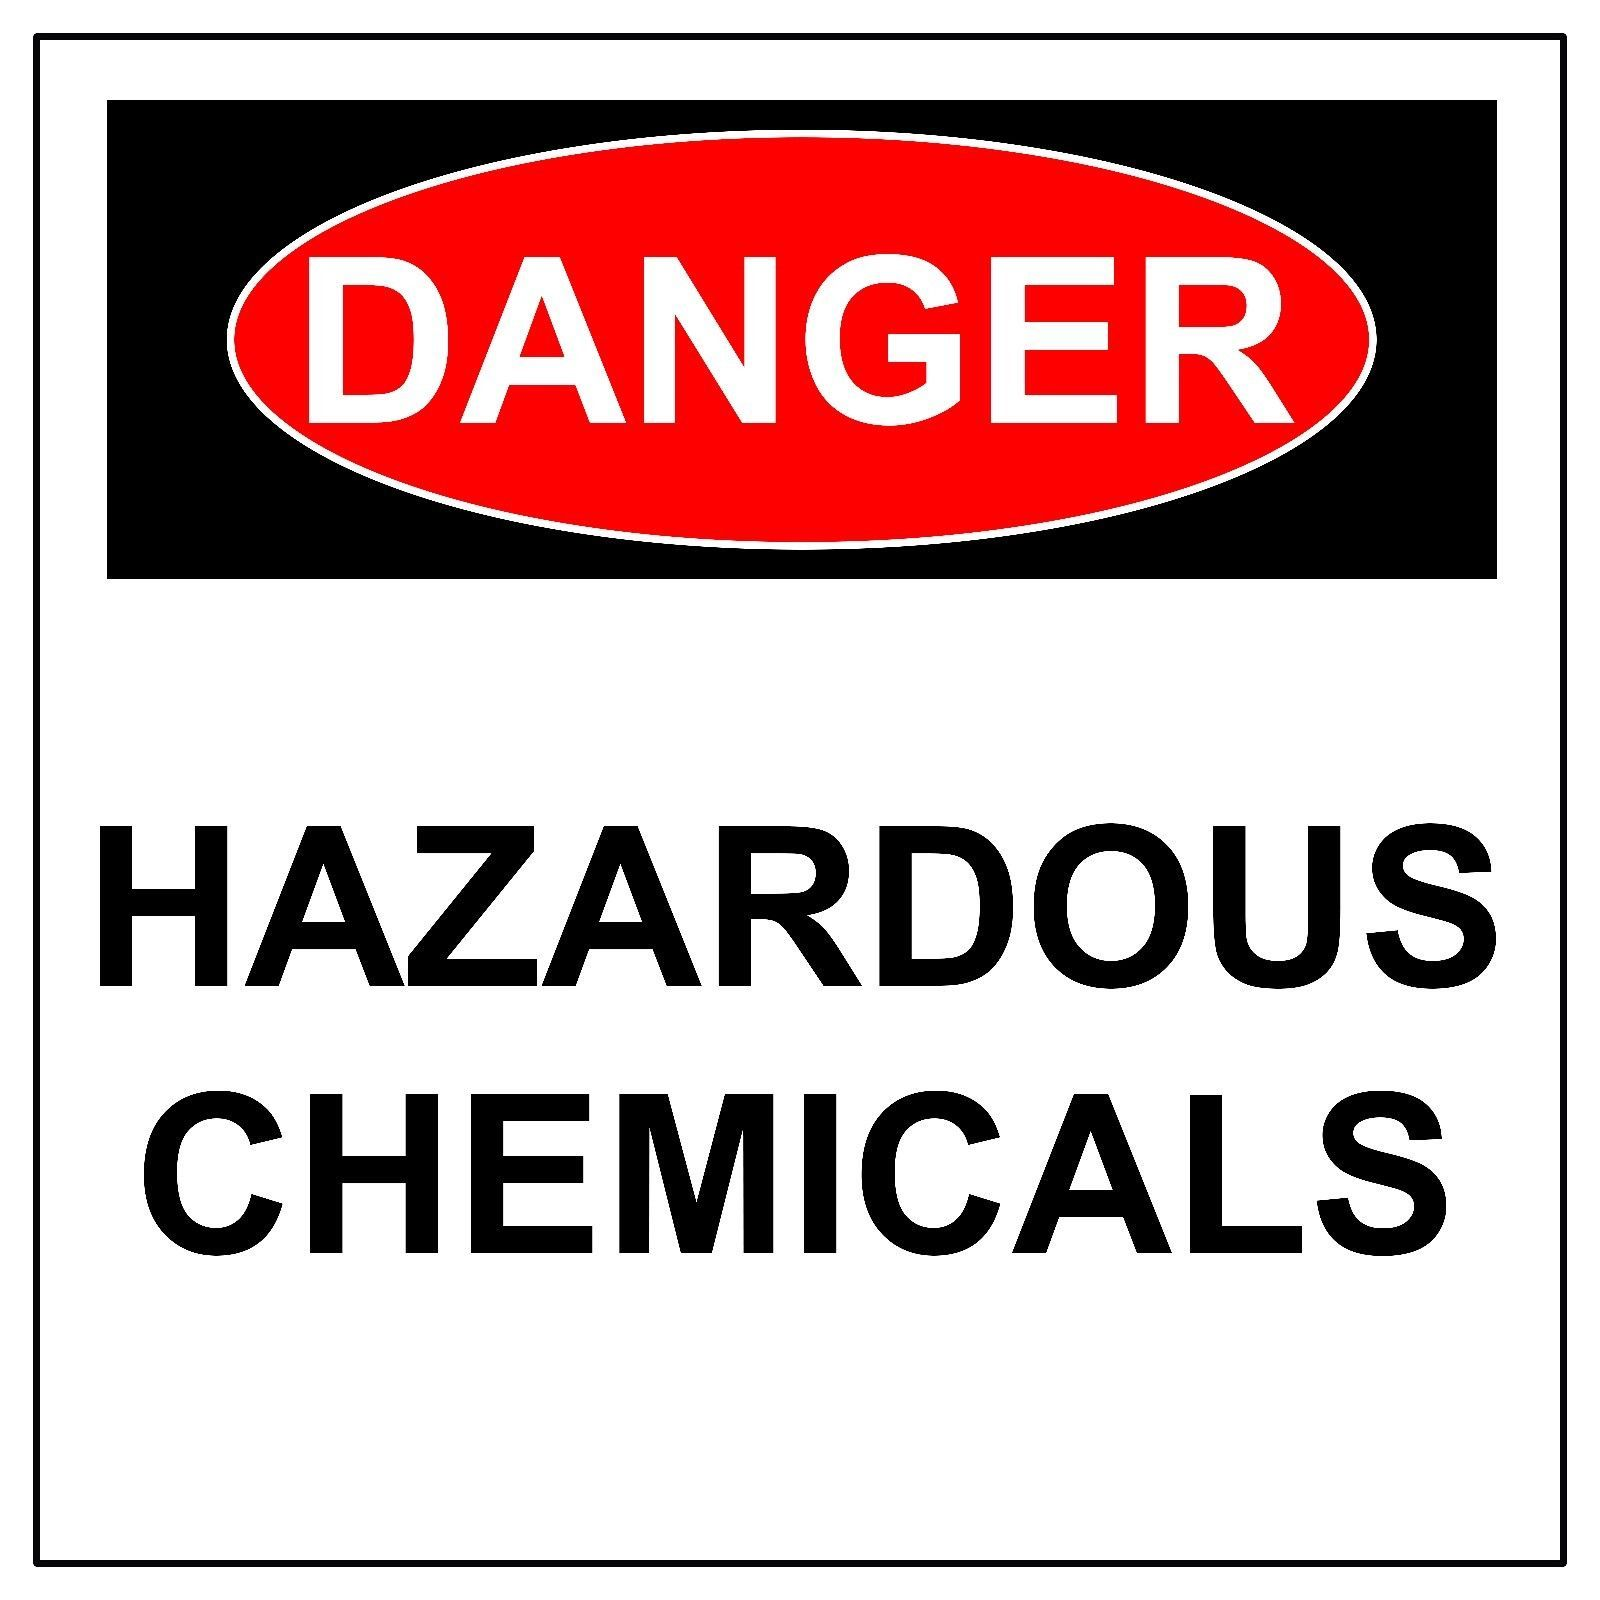 Danger Hazardous Chemicals Sign,  Aluminum Metal Safety Warning UV Print Signs